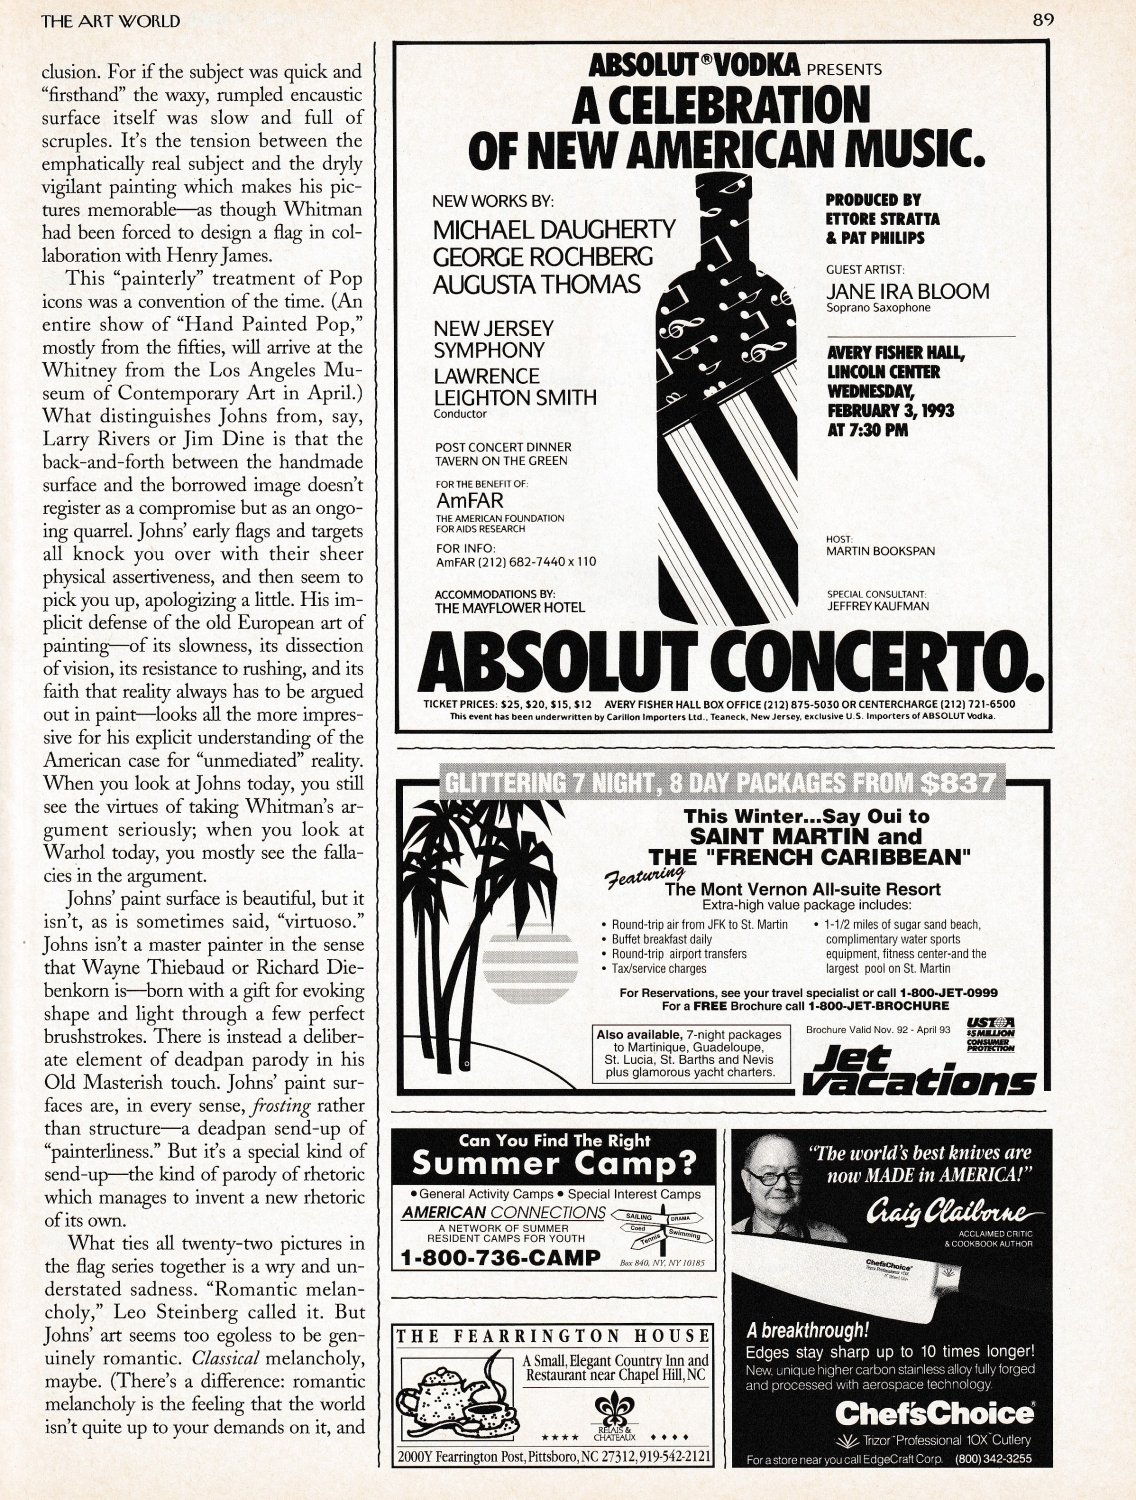 ABSOLUT CONCERTO Vodka Magazine Ad 1/3rd Page Celebration of New American Music